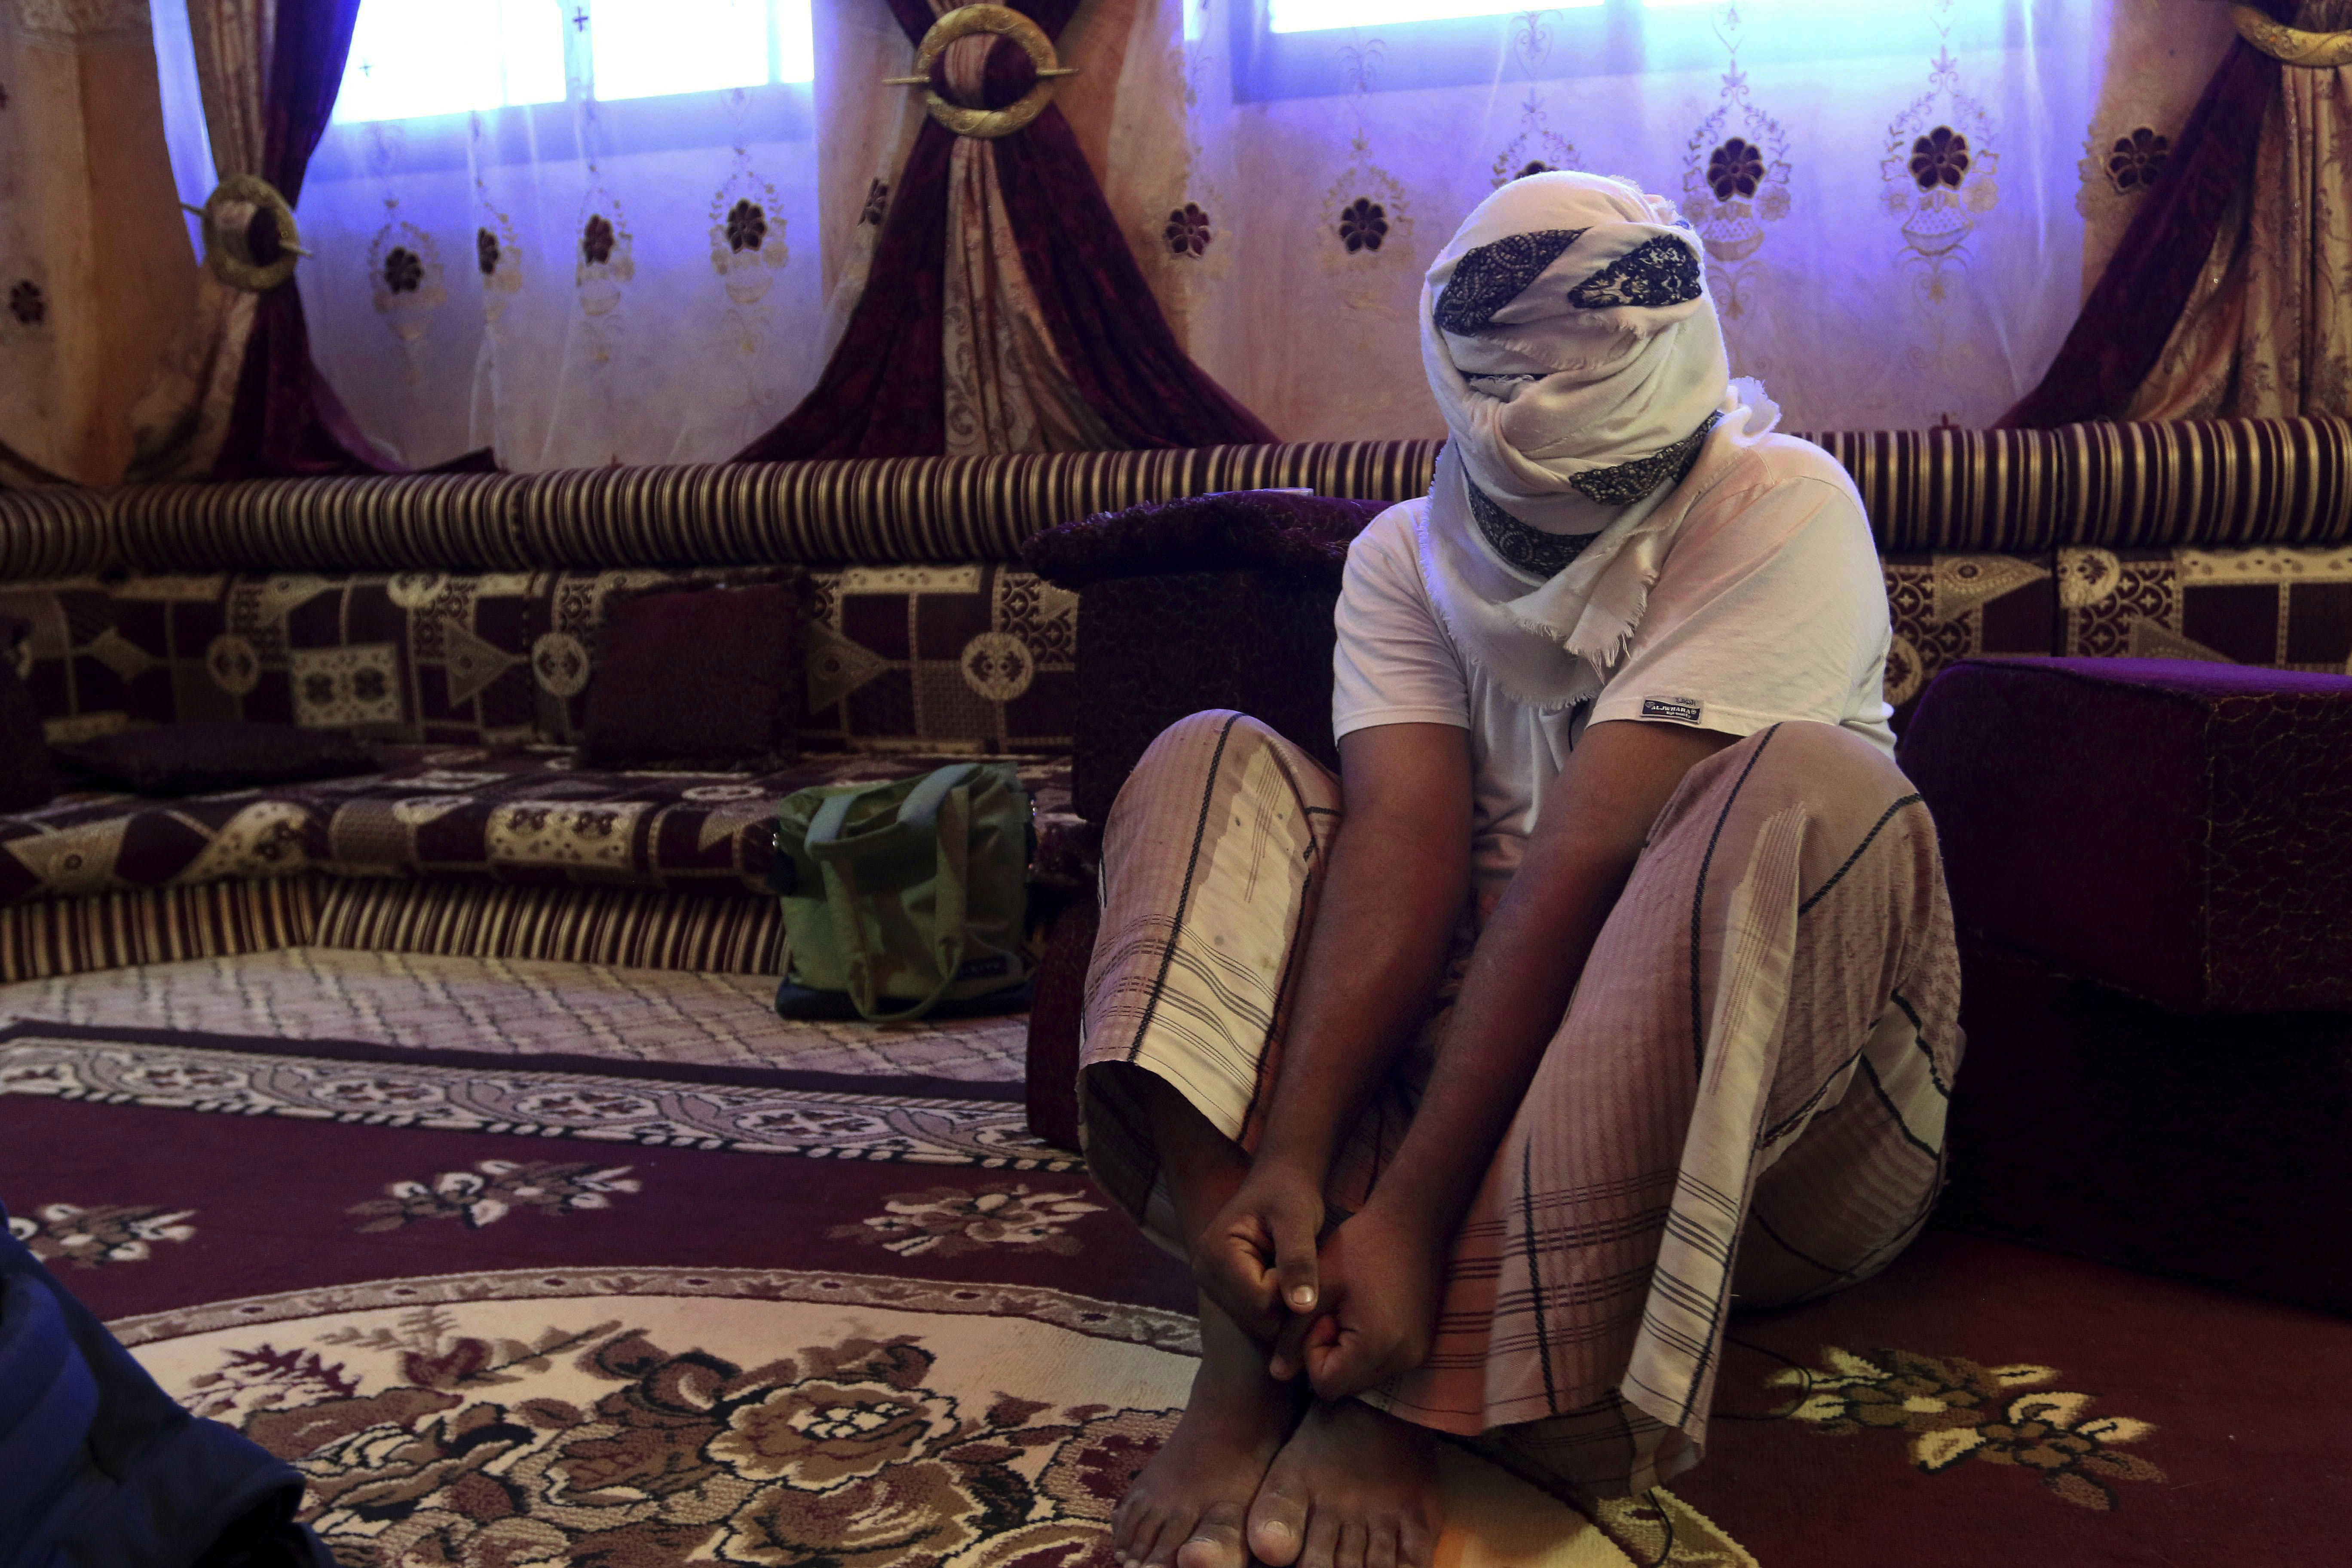 U.S. questions detainees in Yemen prisons rife with torture